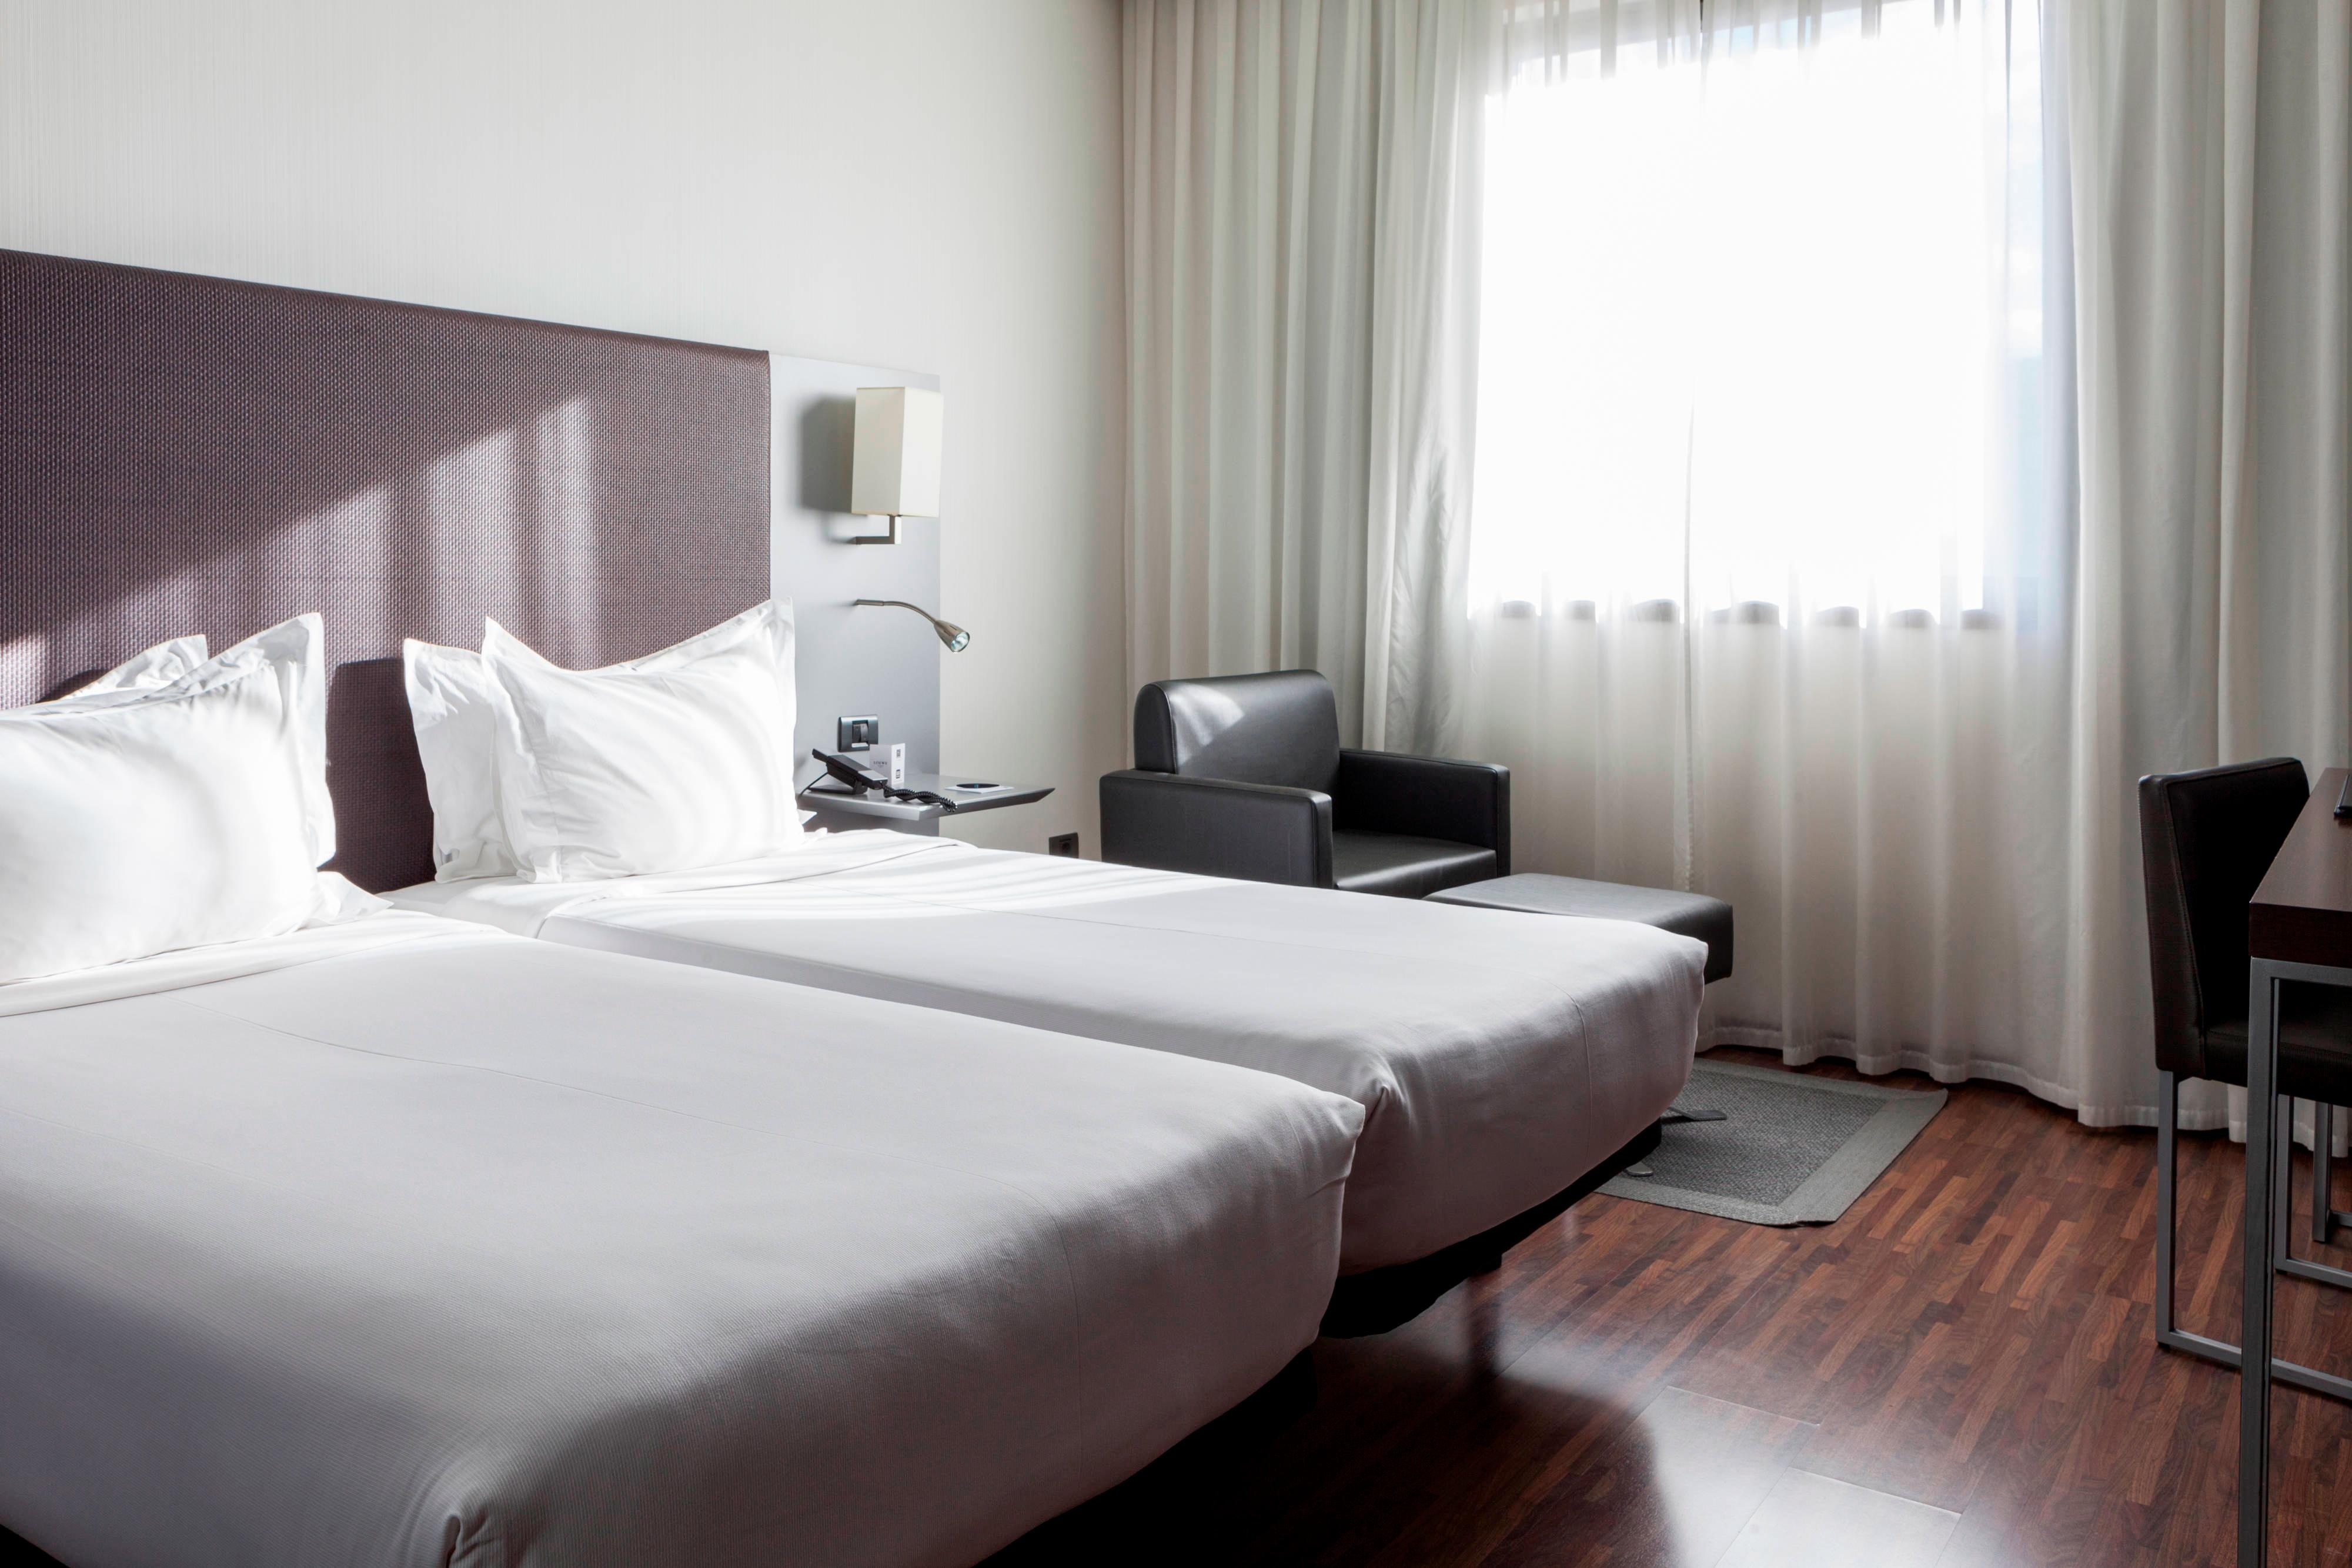 Comfortable hotel rooms near airport